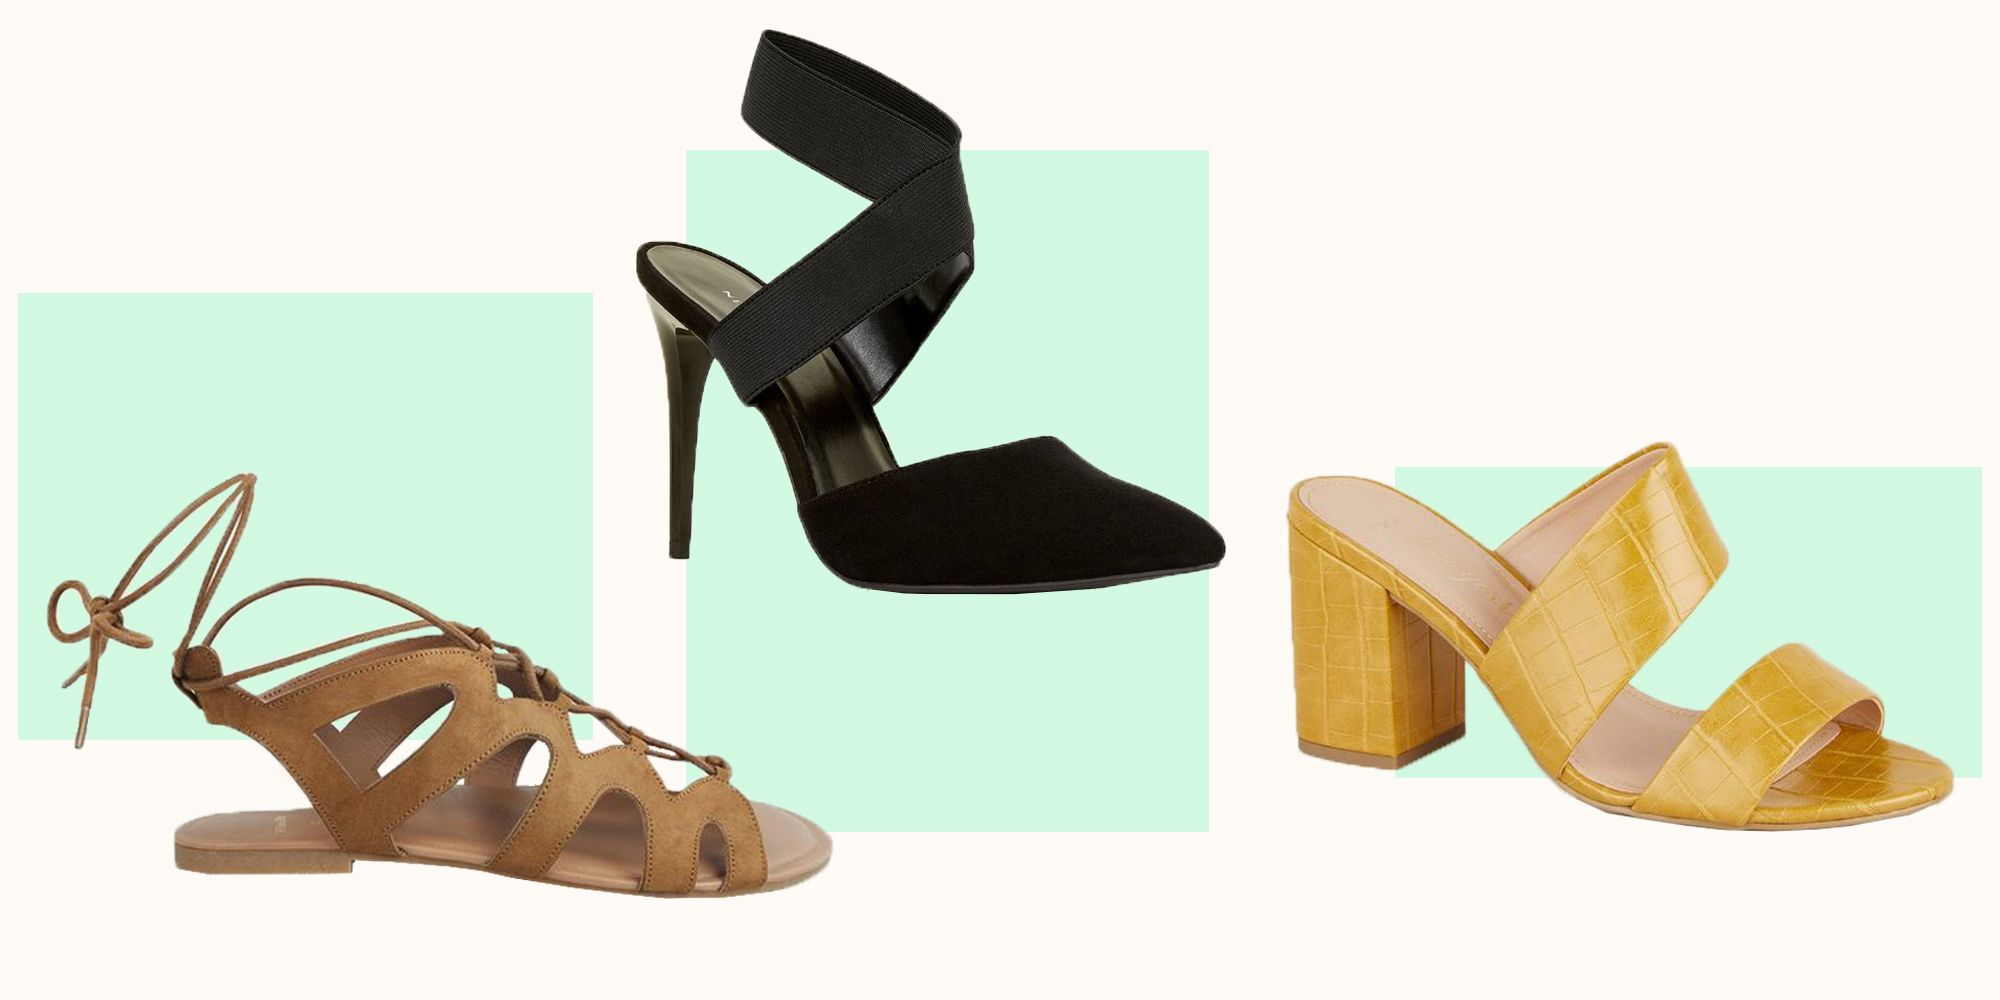 206a8912045 New Look shoes: the 13 best shoes to shop this season